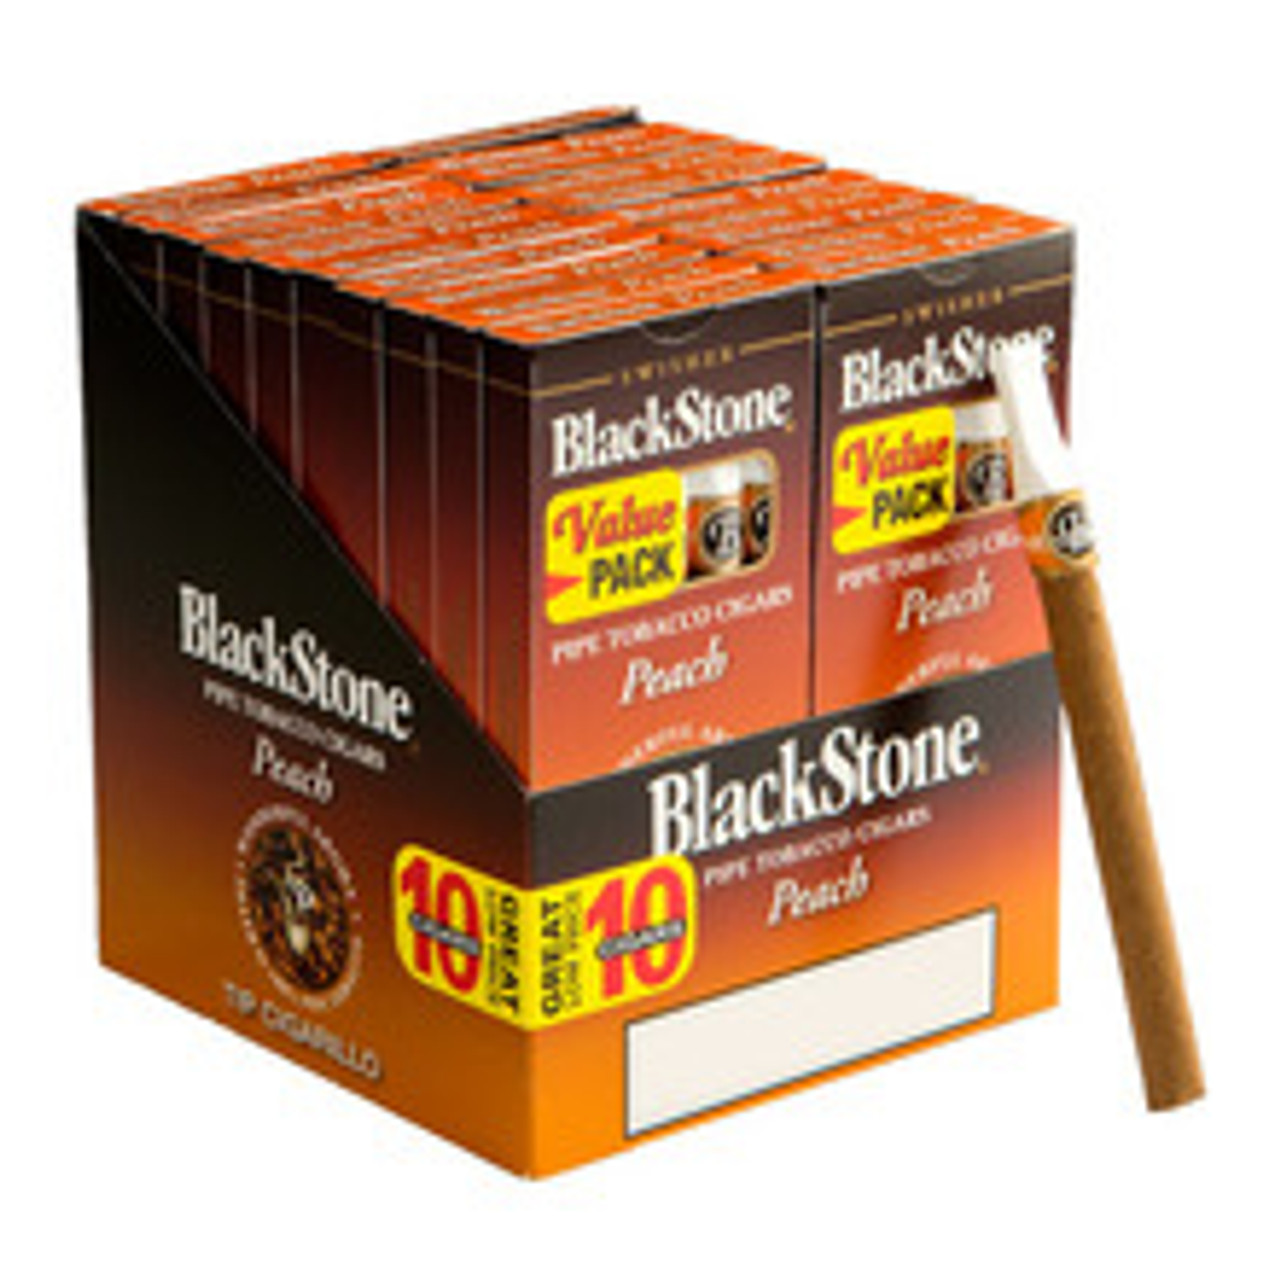 Blackstone Tipped Peach Cigars (10 Packs Of 10) - Natural